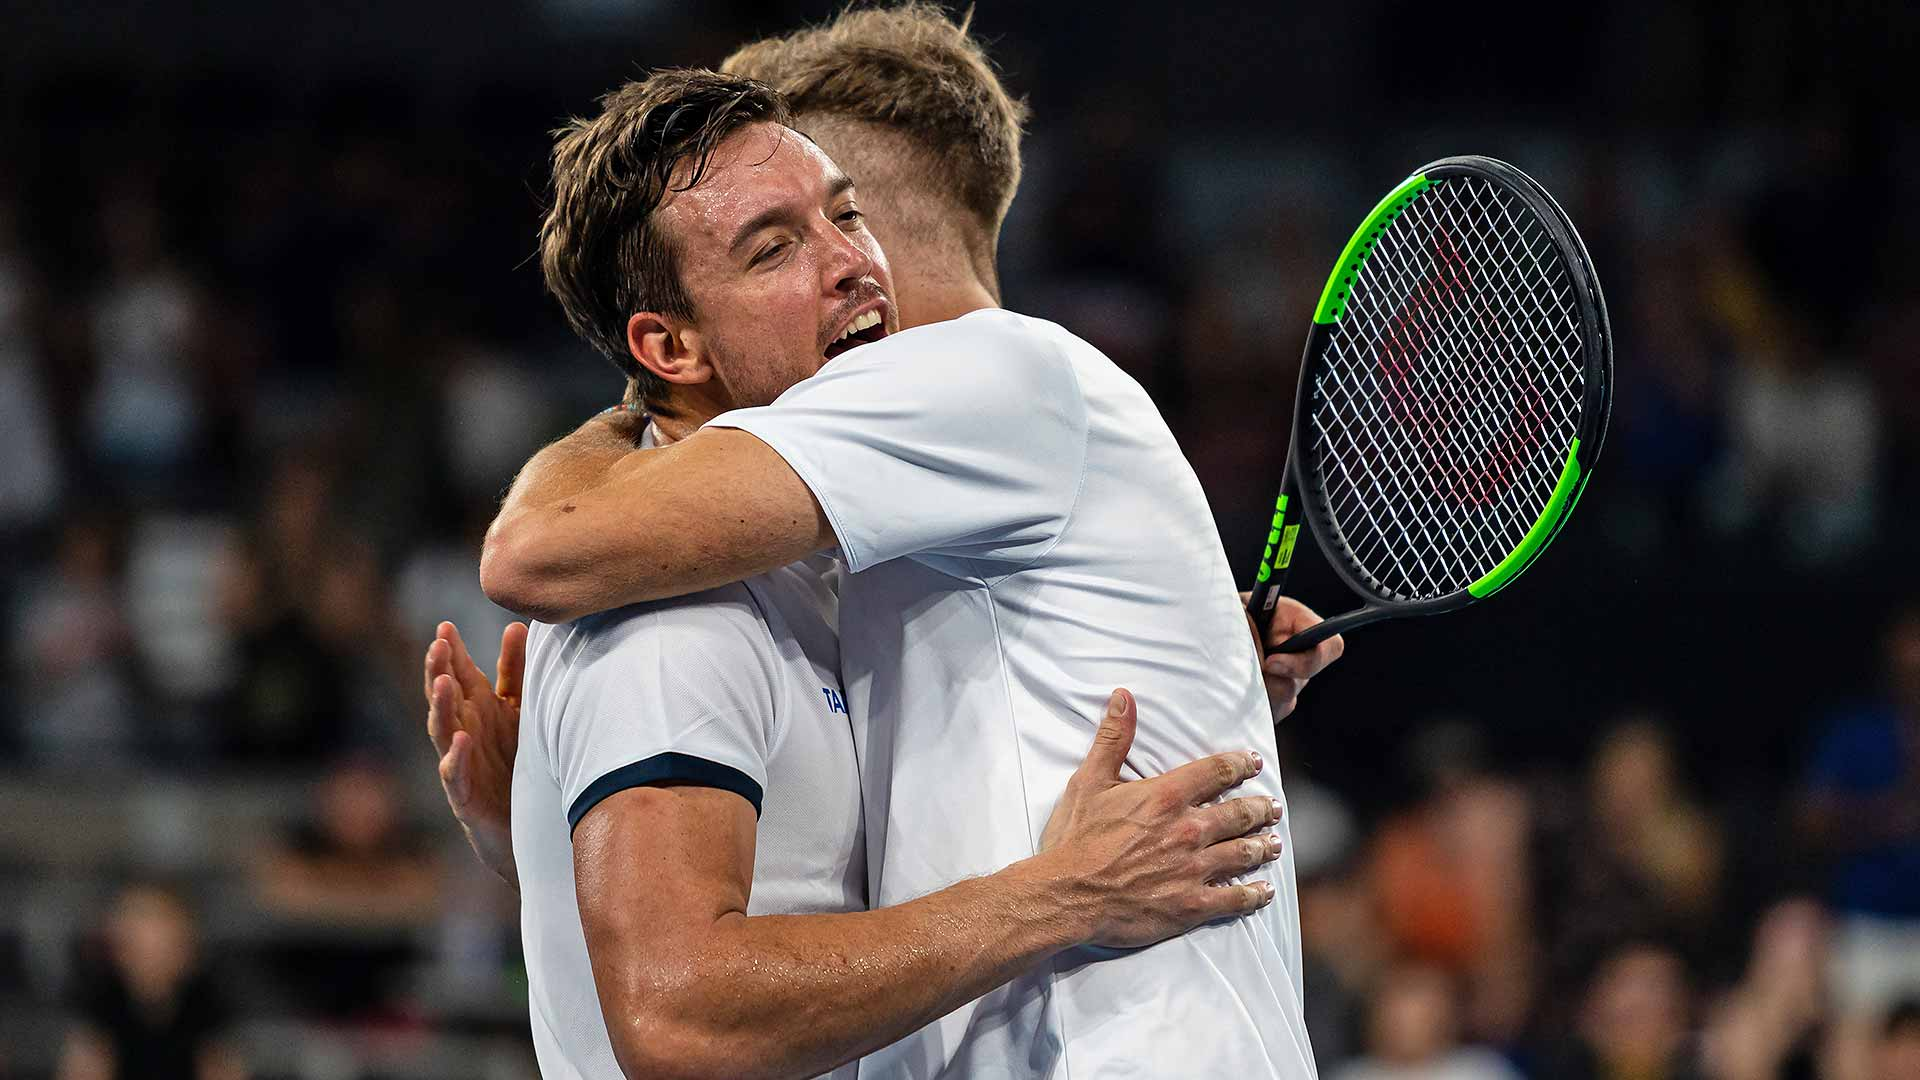 Andreas Mies/Kevin Krawietz celebrate winning the deciding doubles match on Sunday night at the ATP Cup in Brisbane.